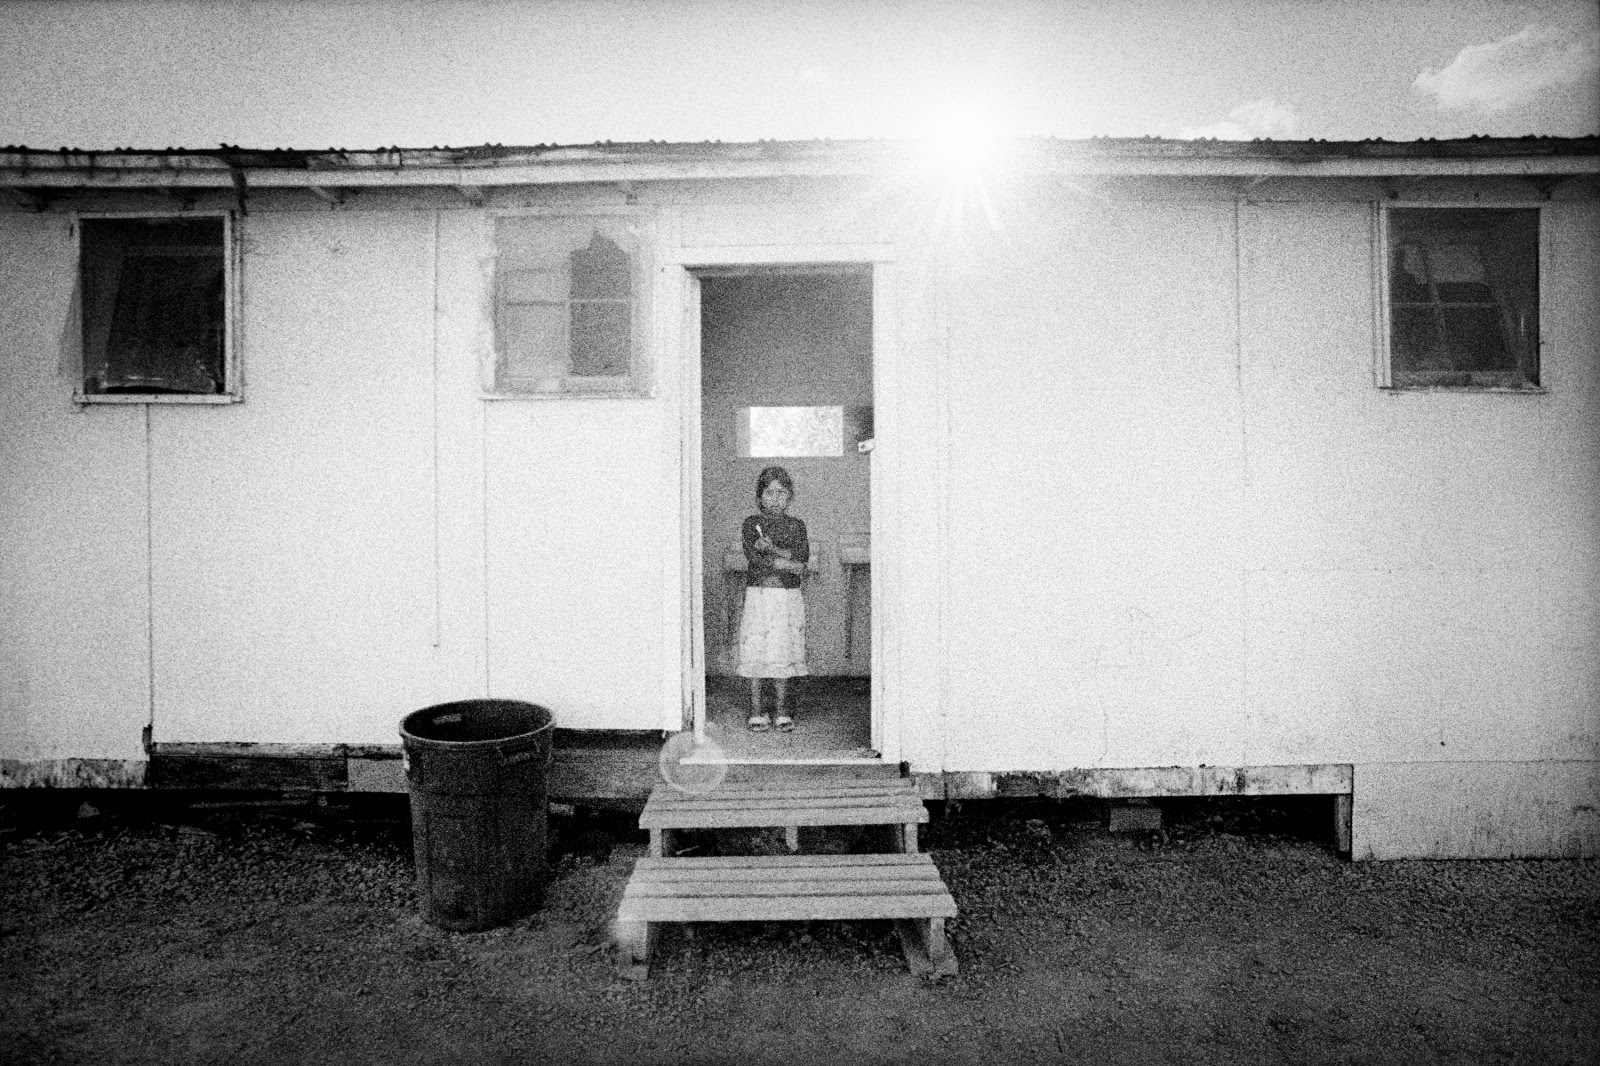 An immigrant girl stands in the bathroom of a migrant camp. Hillsboro, Oregon.